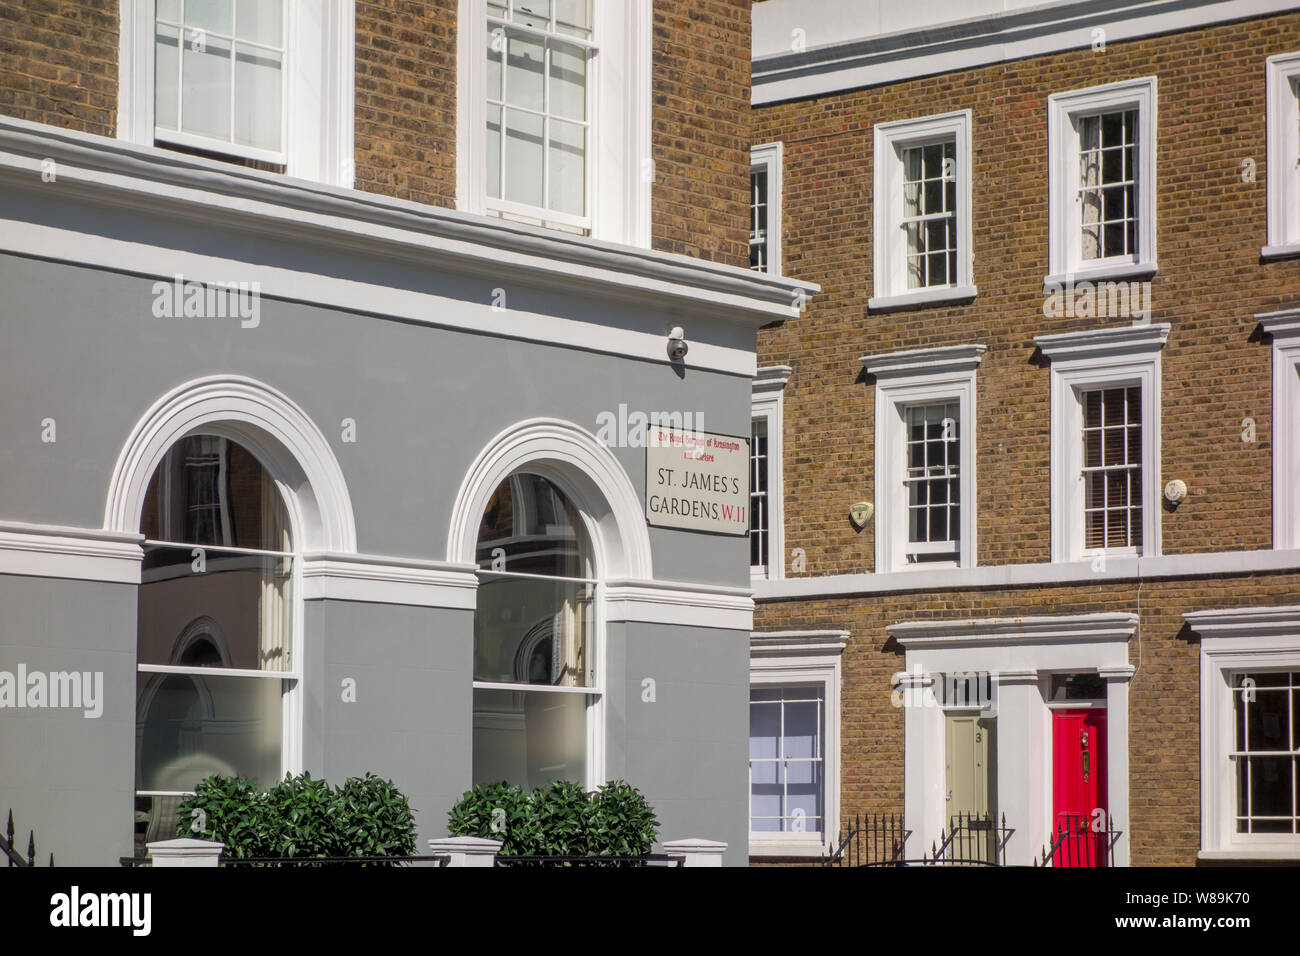 Terraced houses on St. James's Gardens, The Royal Borough of Kensington and Chelsea, Notting Hill, London, UK Stock Photo